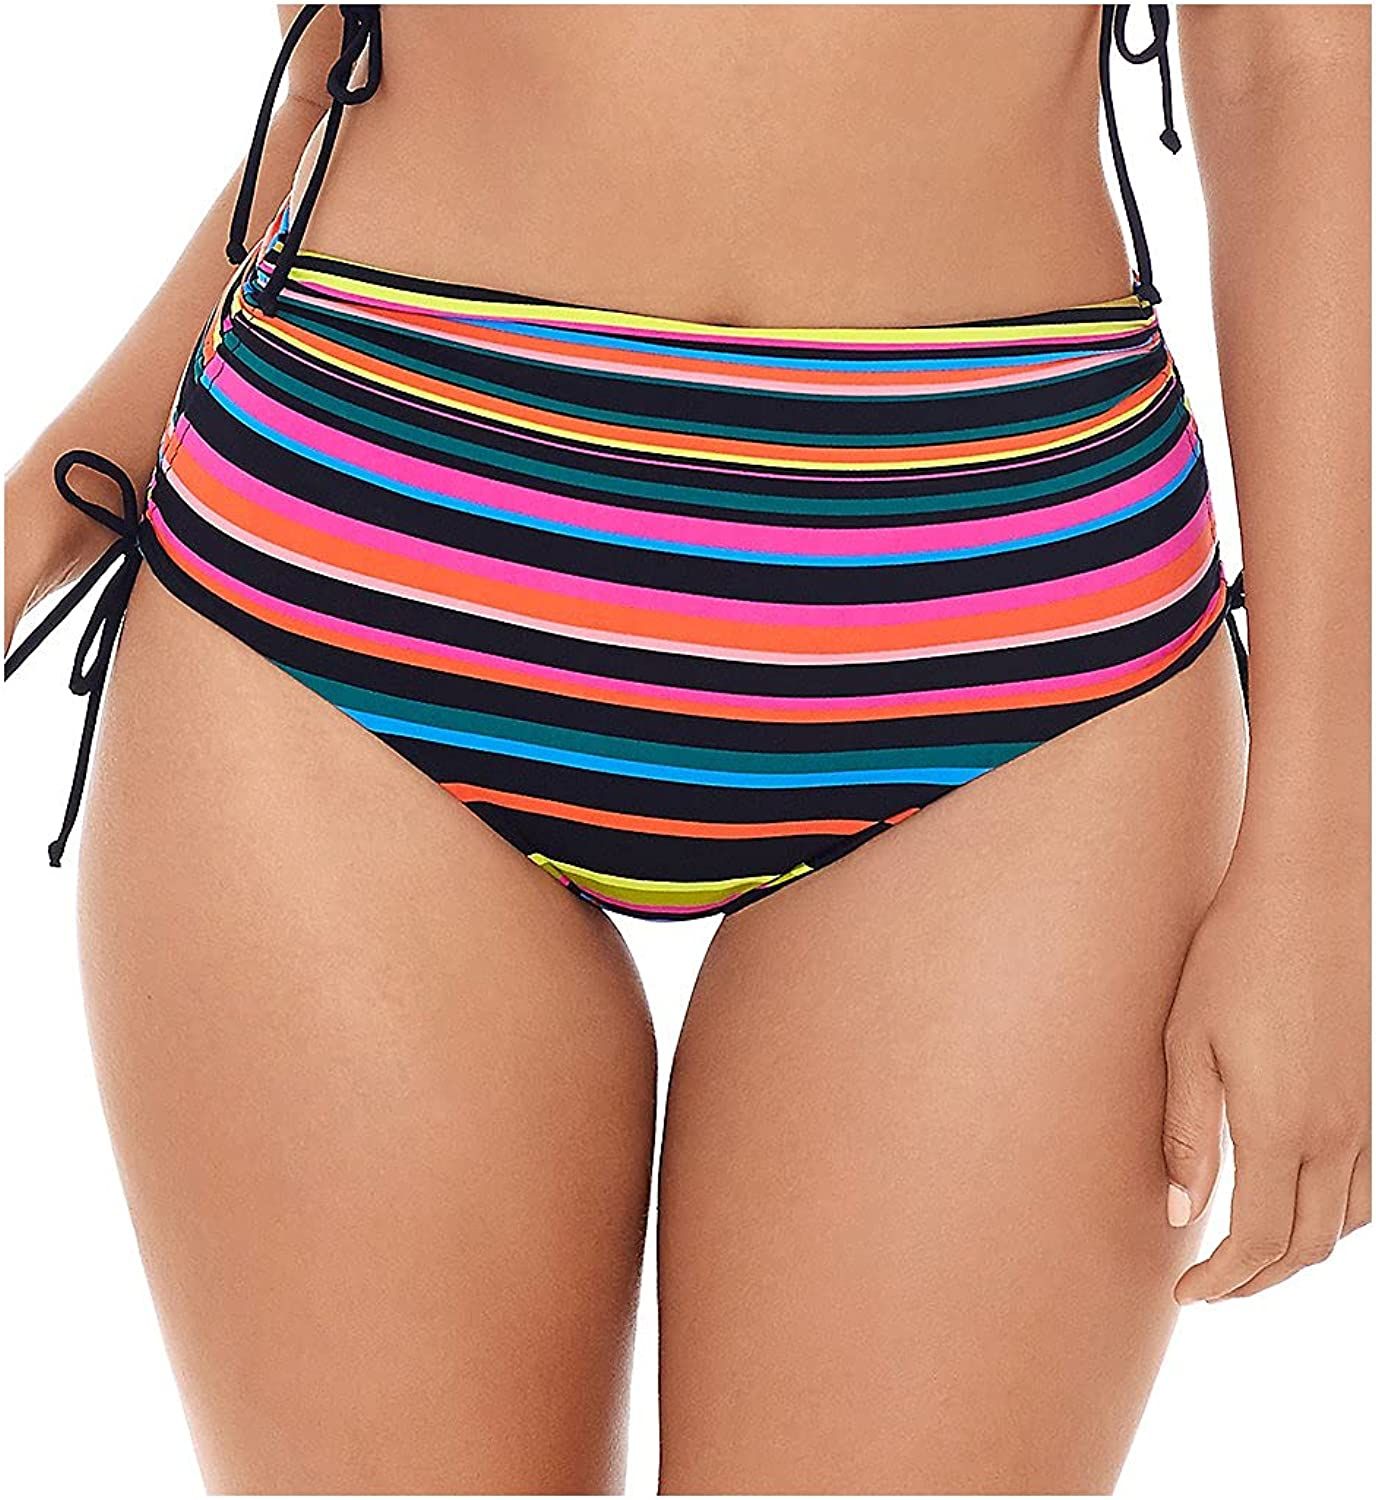 Skinny Dippers by Miraclesuit womens Blinky Transformer Bottoms